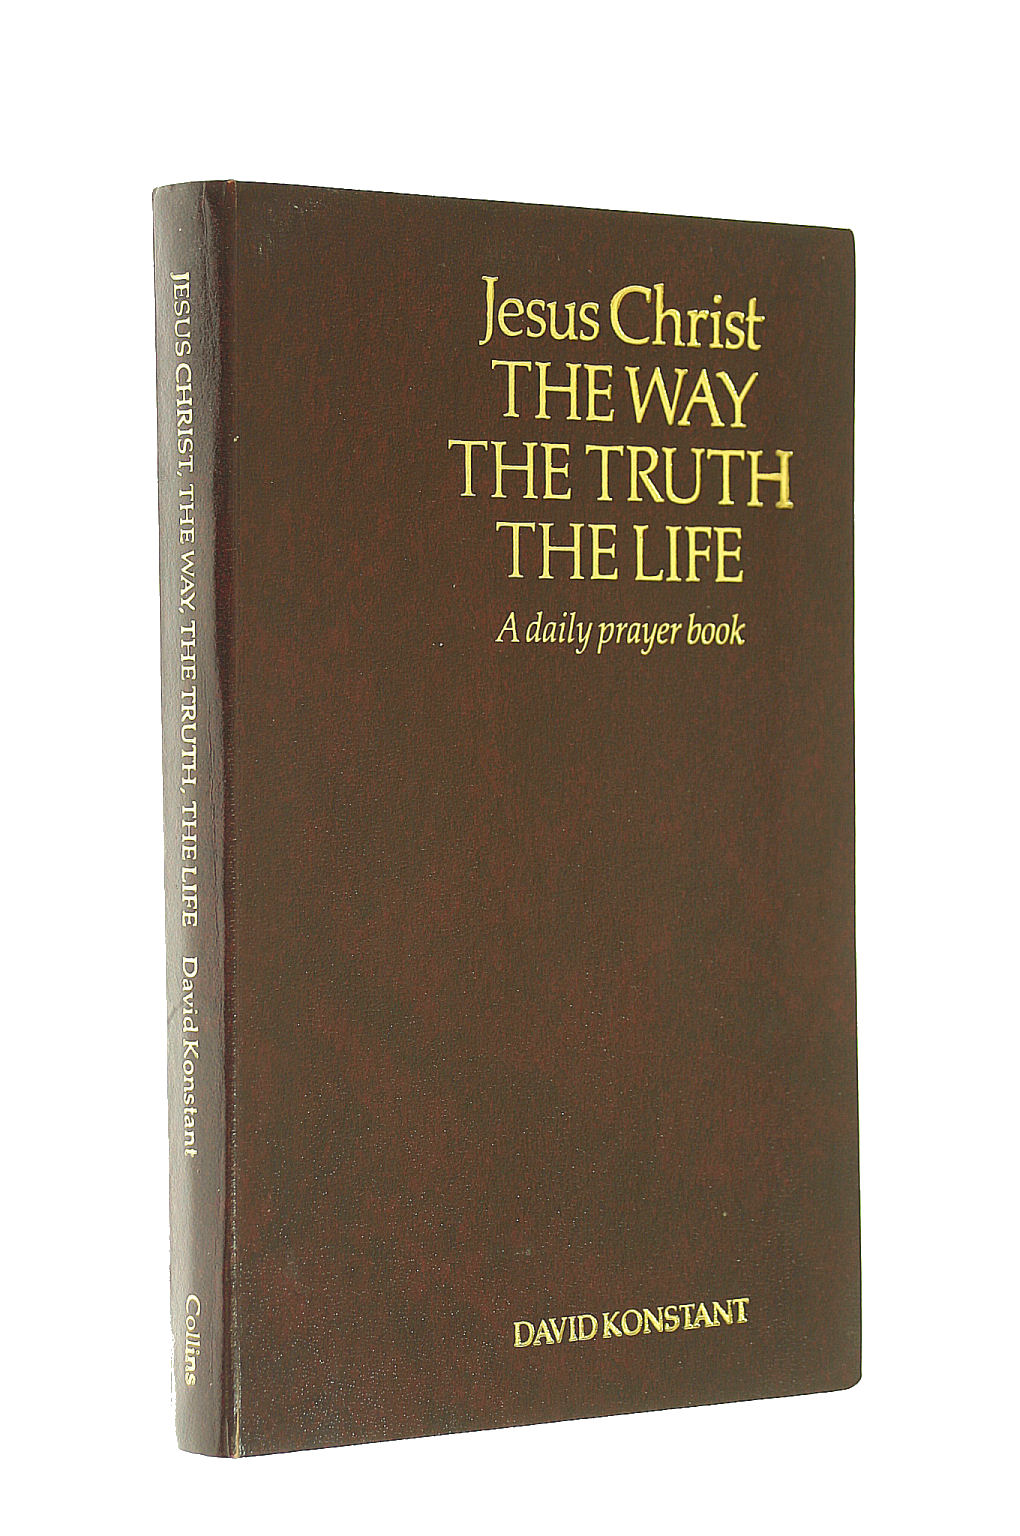 Image for Jesus Christ: The Way, the Truth, the Life - A Daily Prayer Book